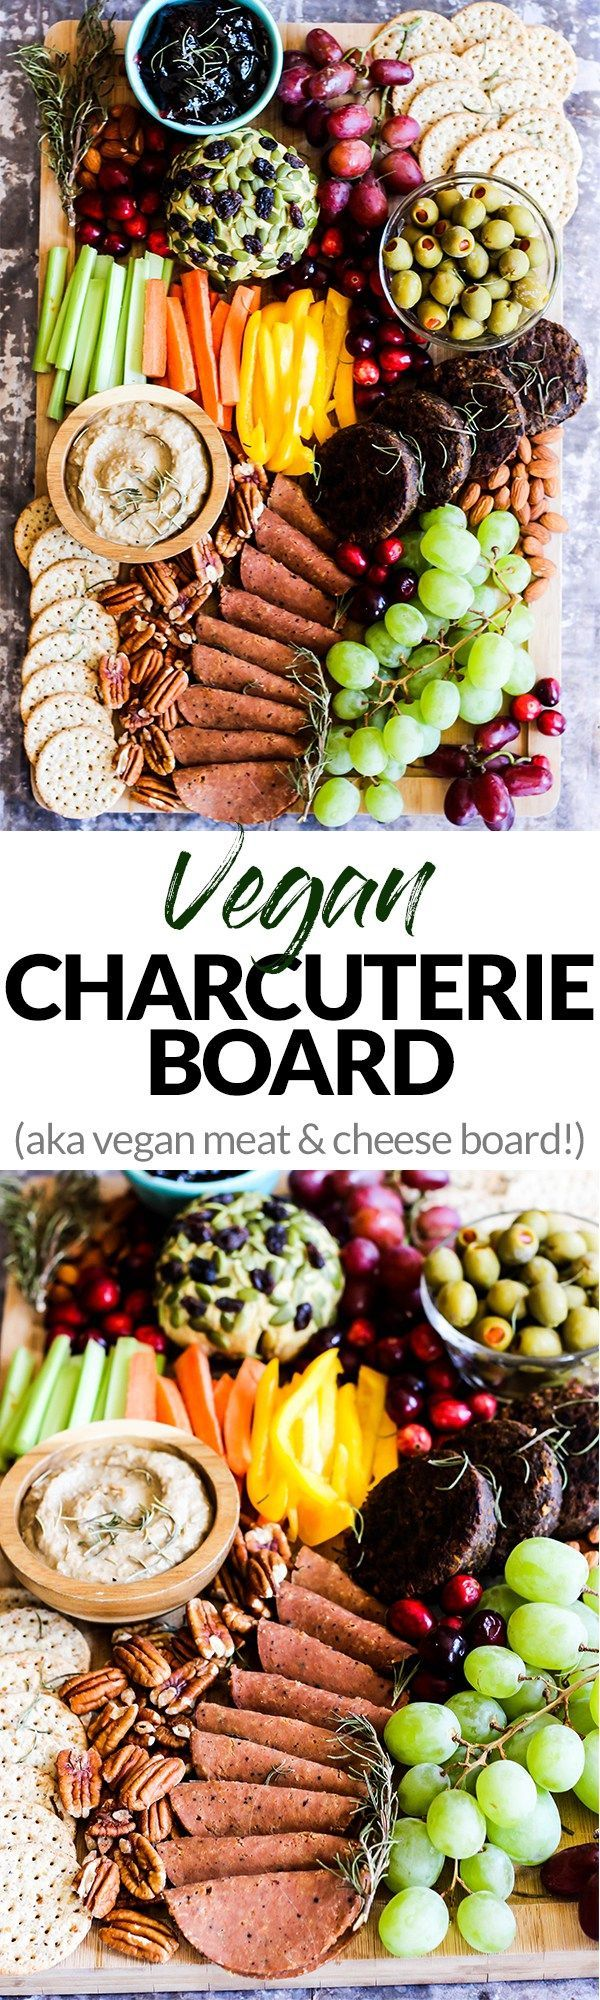 Serve this epic Vegan Charcuterie Board at your next party as a fun appetizer! Loaded with veggie meats, dairy-free cheese, fruit and vegetables. @SweetEarthFoods #sponsor